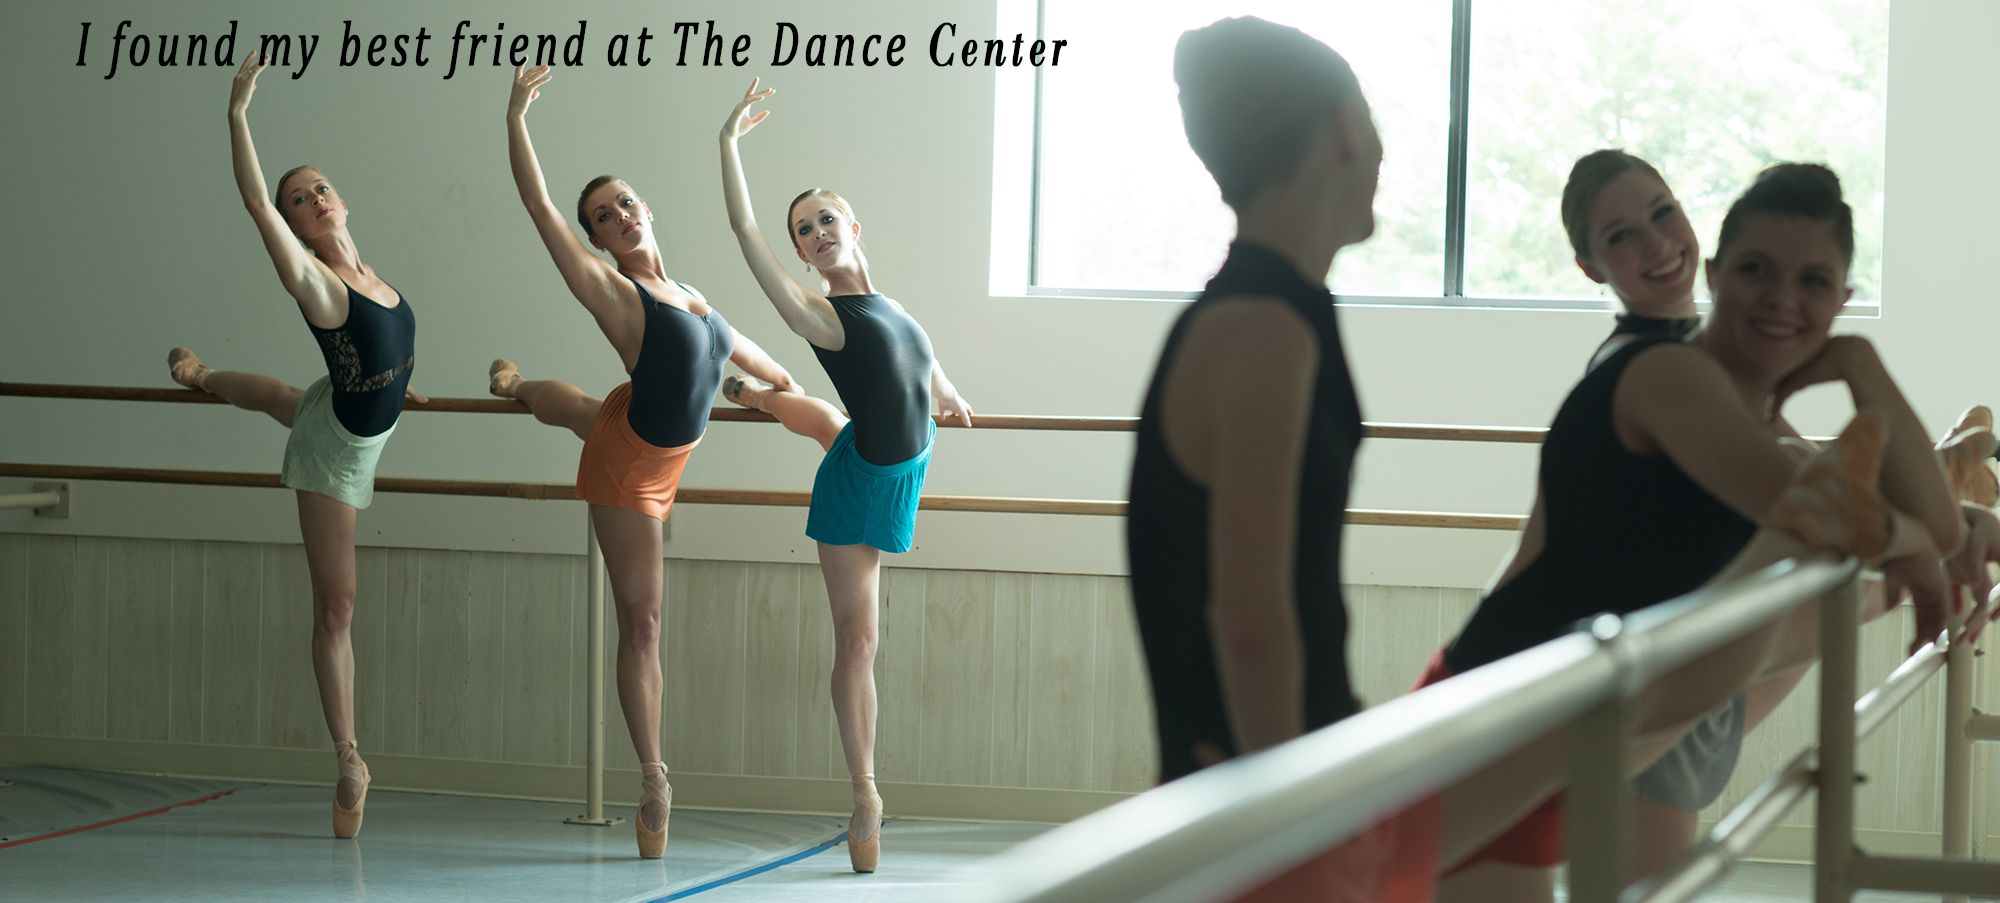 friends dance center